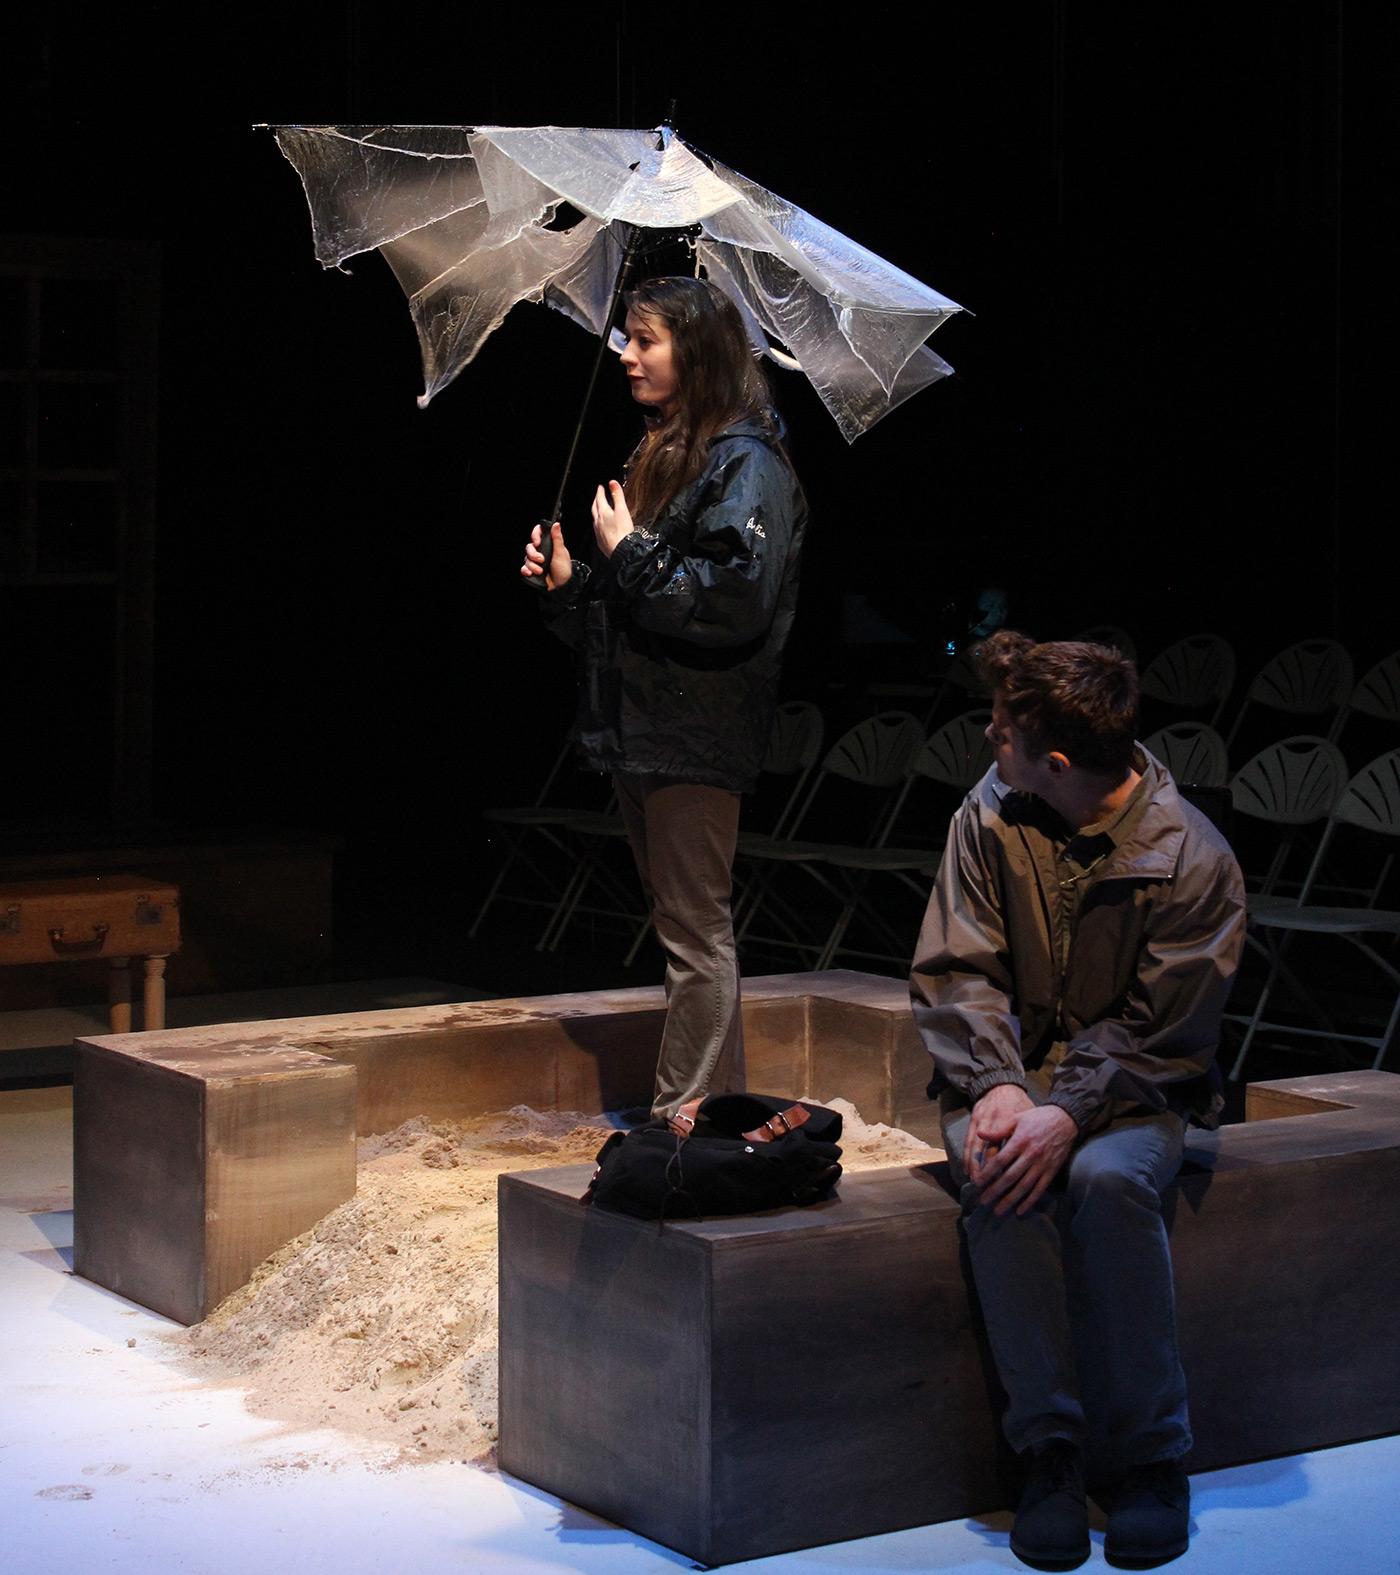 A female holding an umbrella on stage while a male student looks on during a UMass Lowell Theatre Arts production.